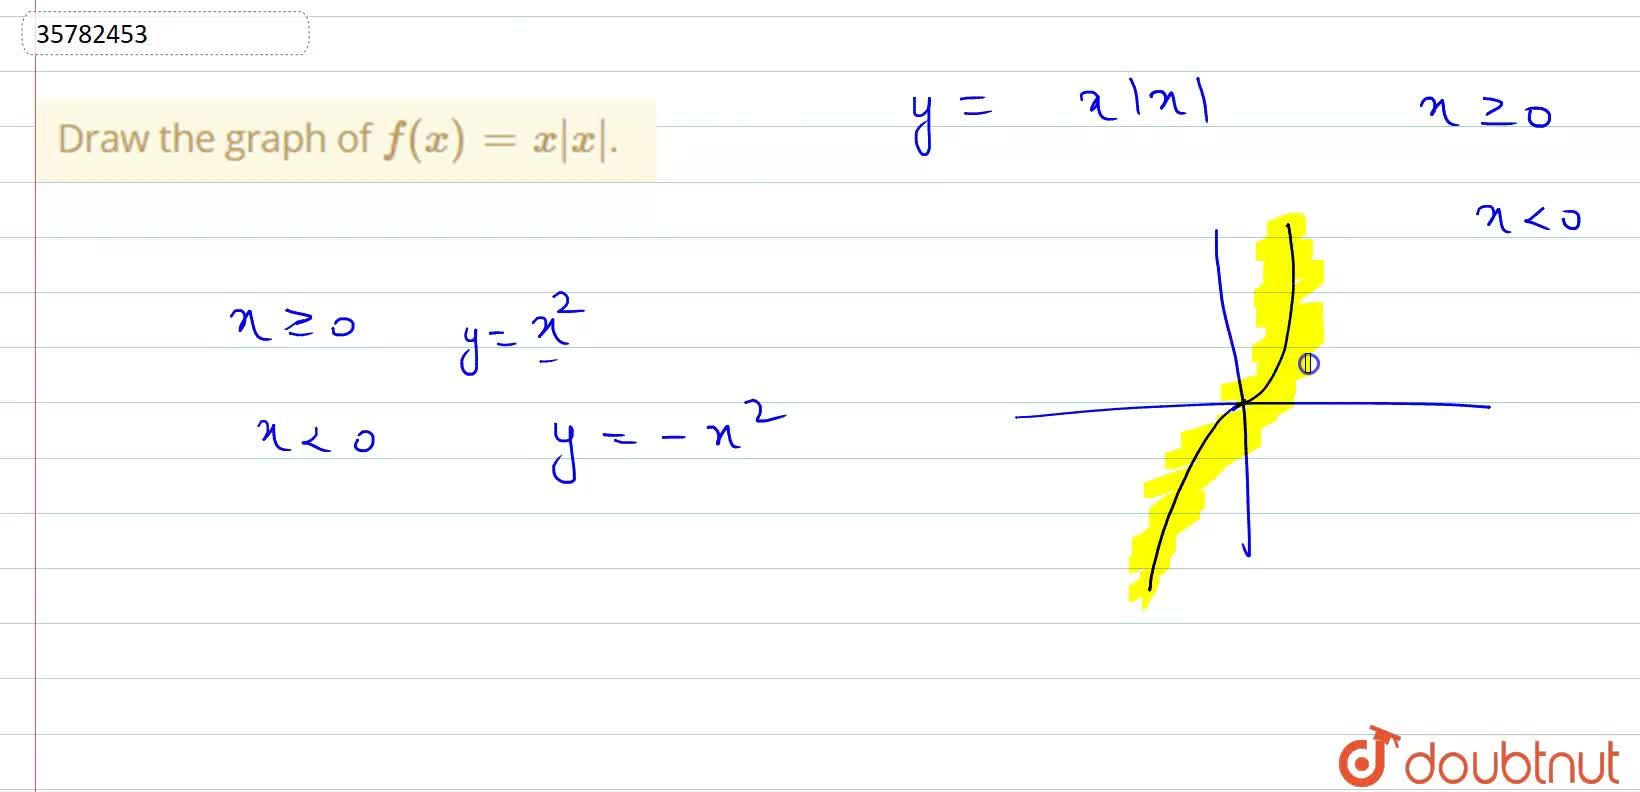 Draw the graph of  f(x) = |x-1|+ |2x-3|. Find the range of the function.